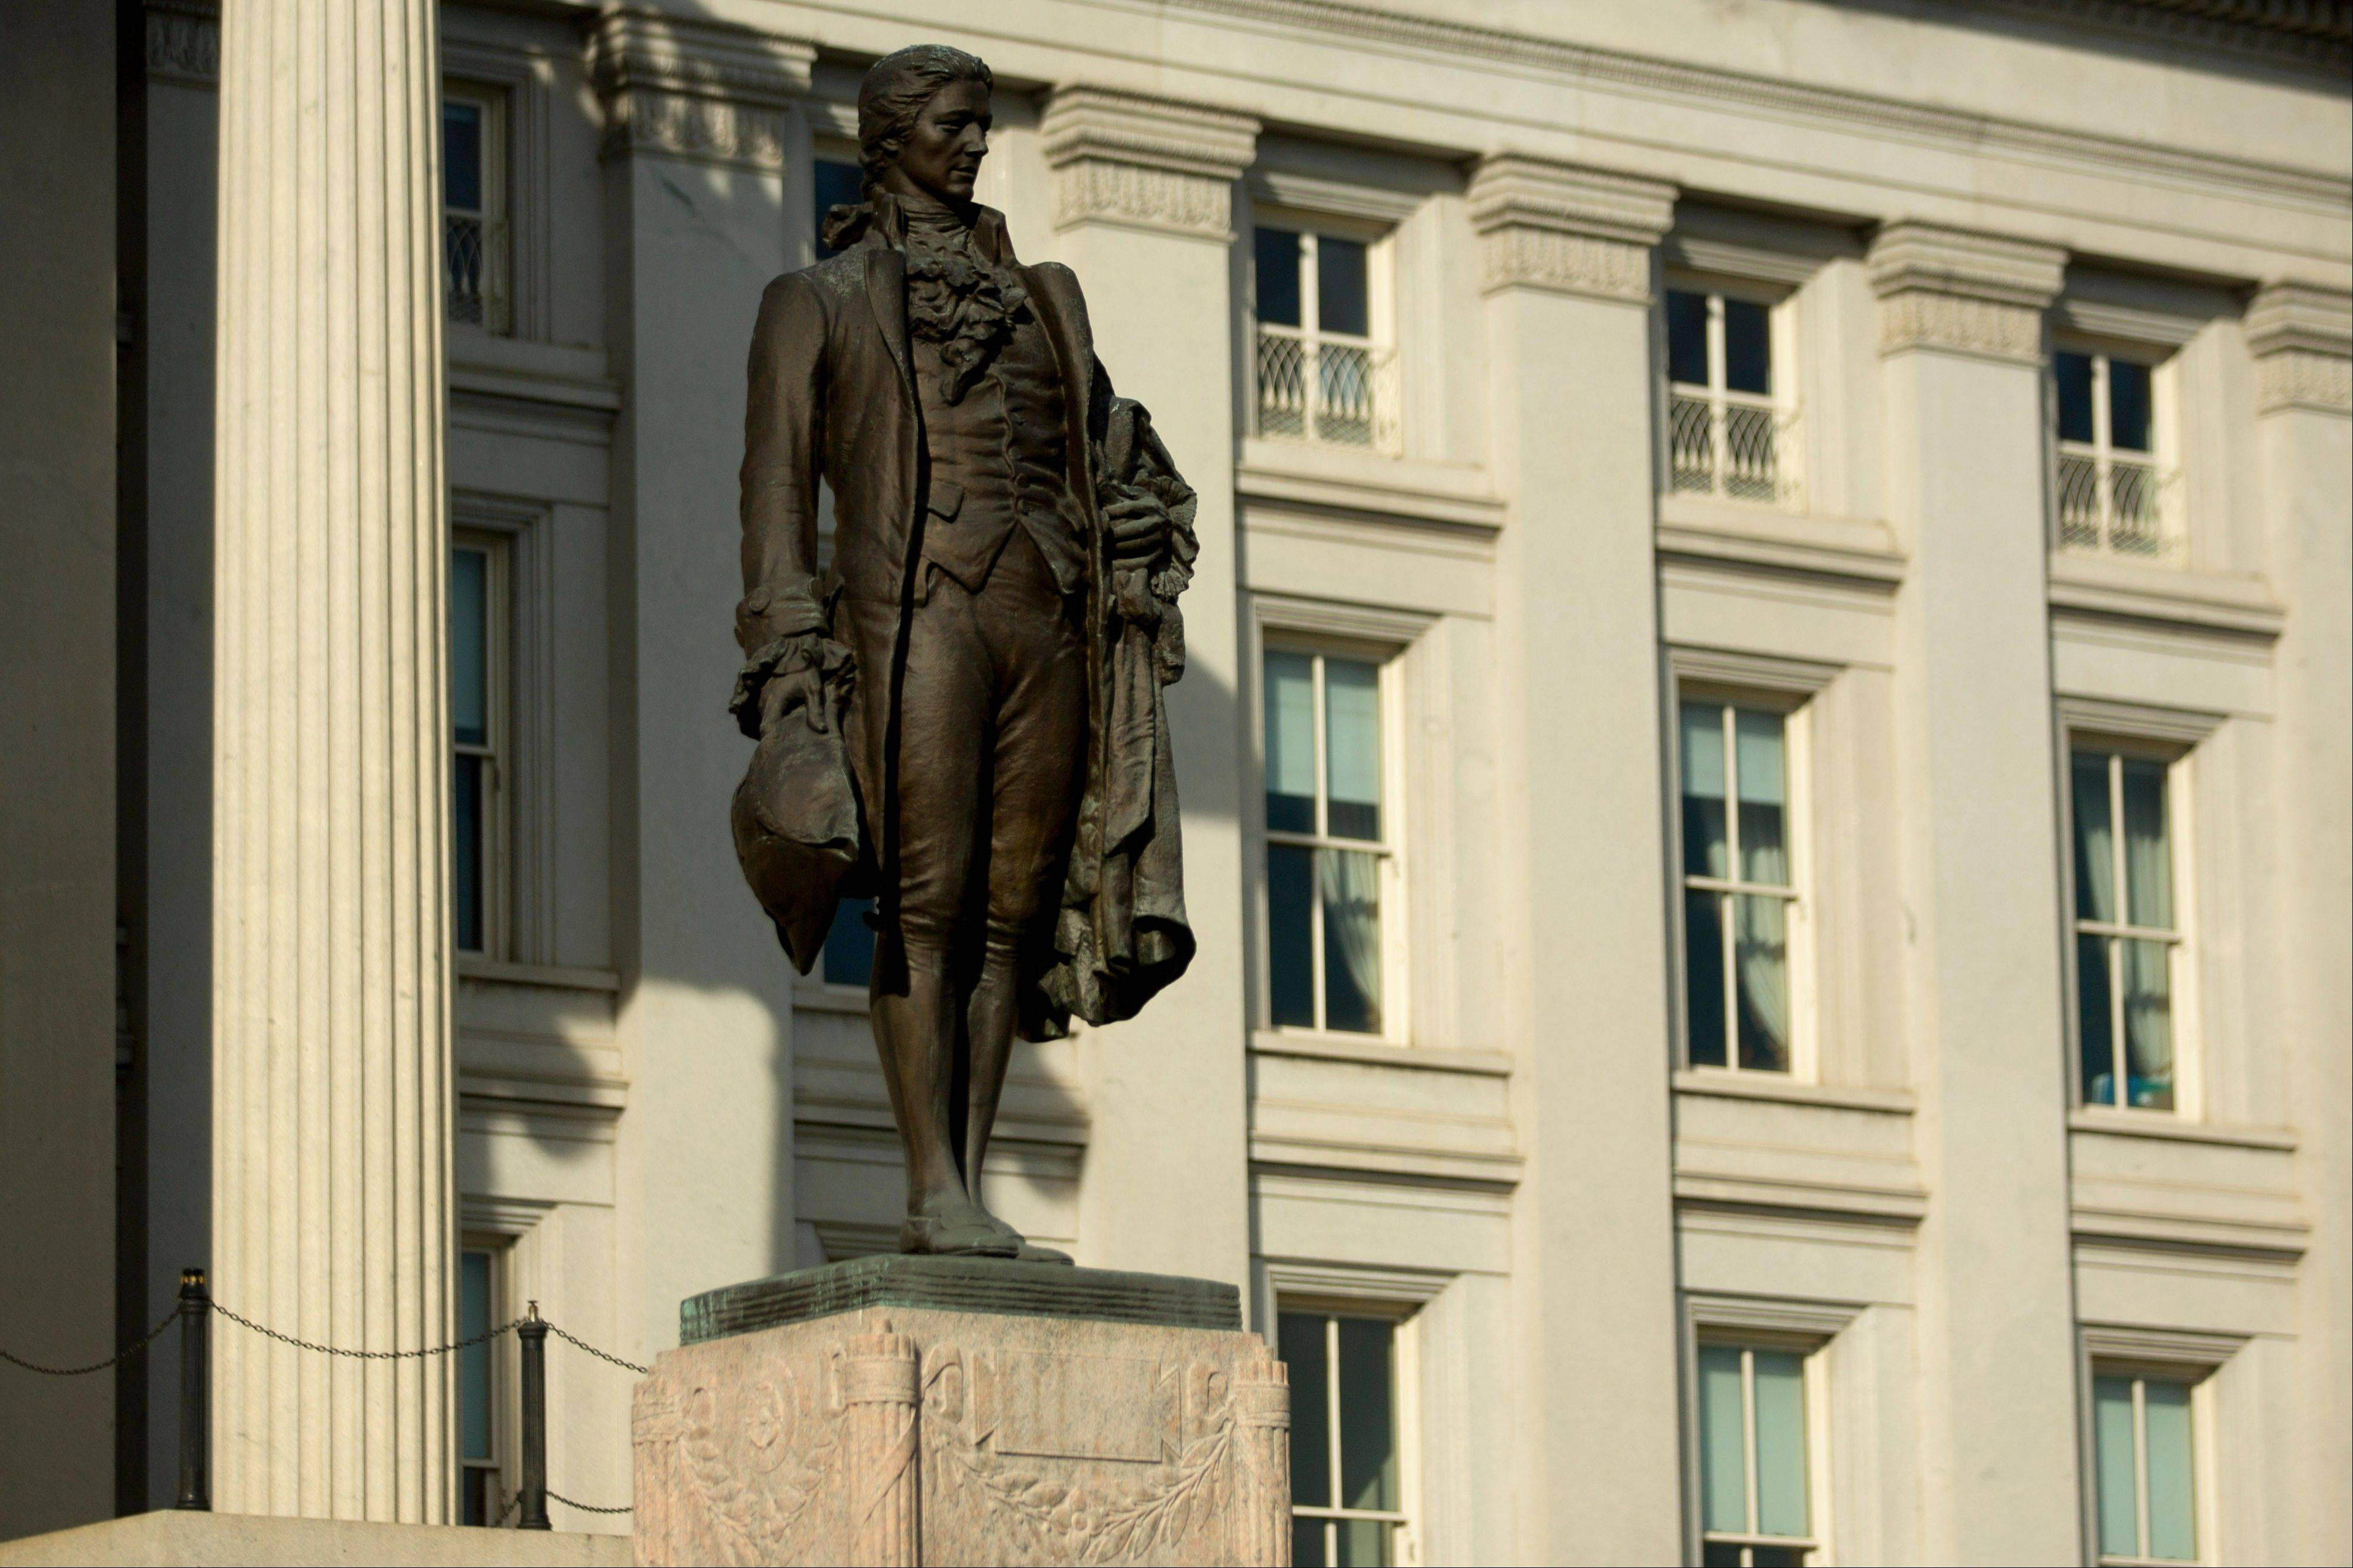 A statue of Alexander Hamilton, the first U.S. Treasury secretary, stands at the U.S. Treasury in Washington, D.C.